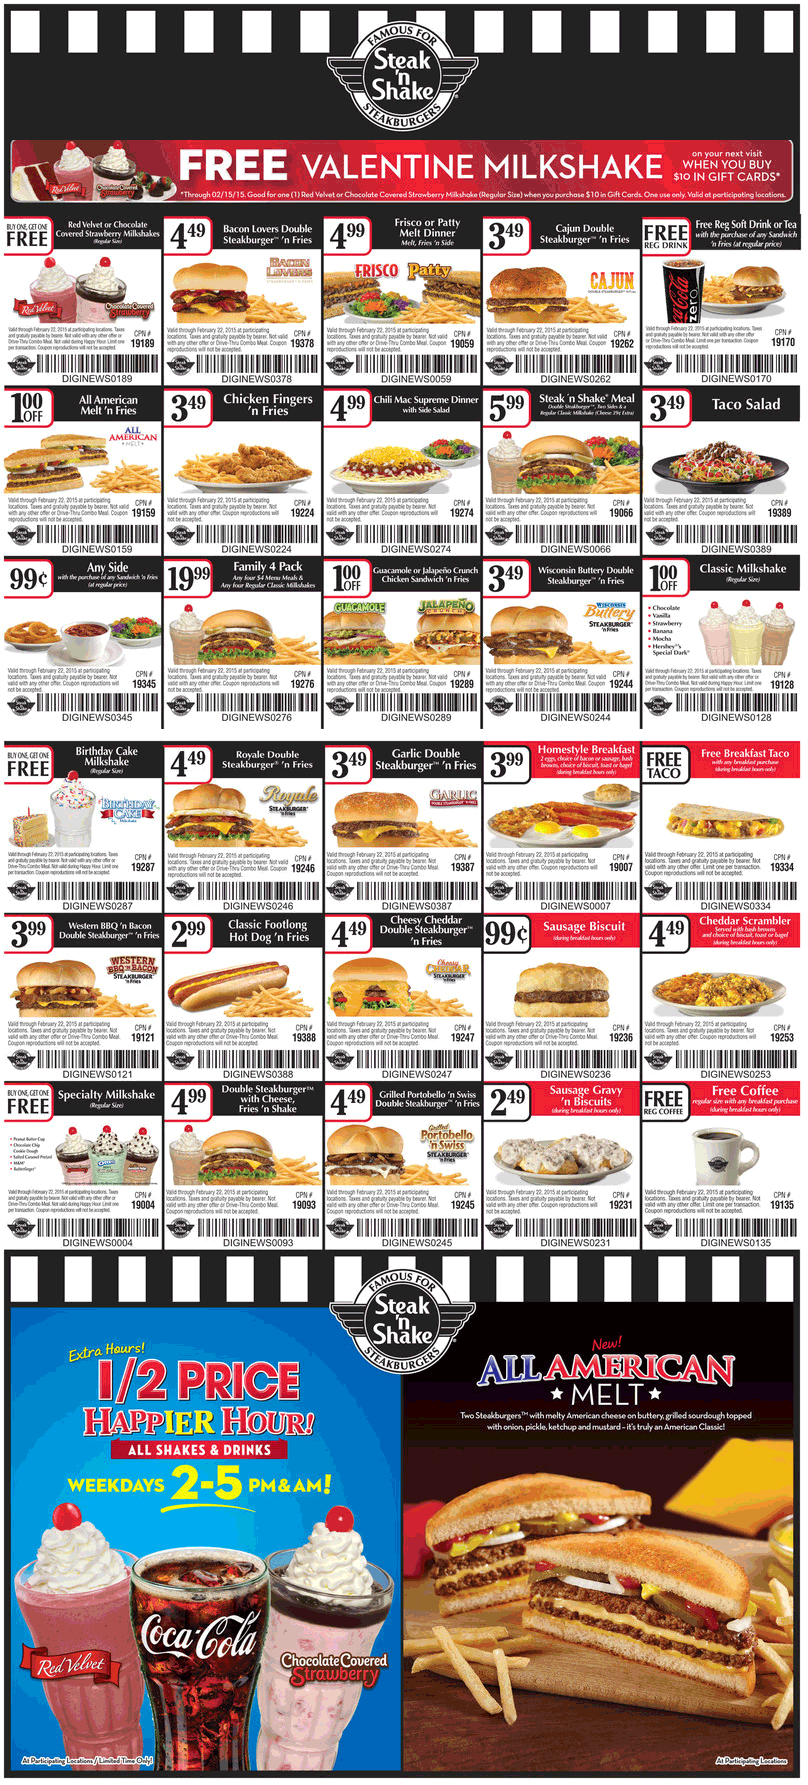 Steak n Shake Coupon June 2017 Second shake free, free coffee & more at Steak n Shake restaurants